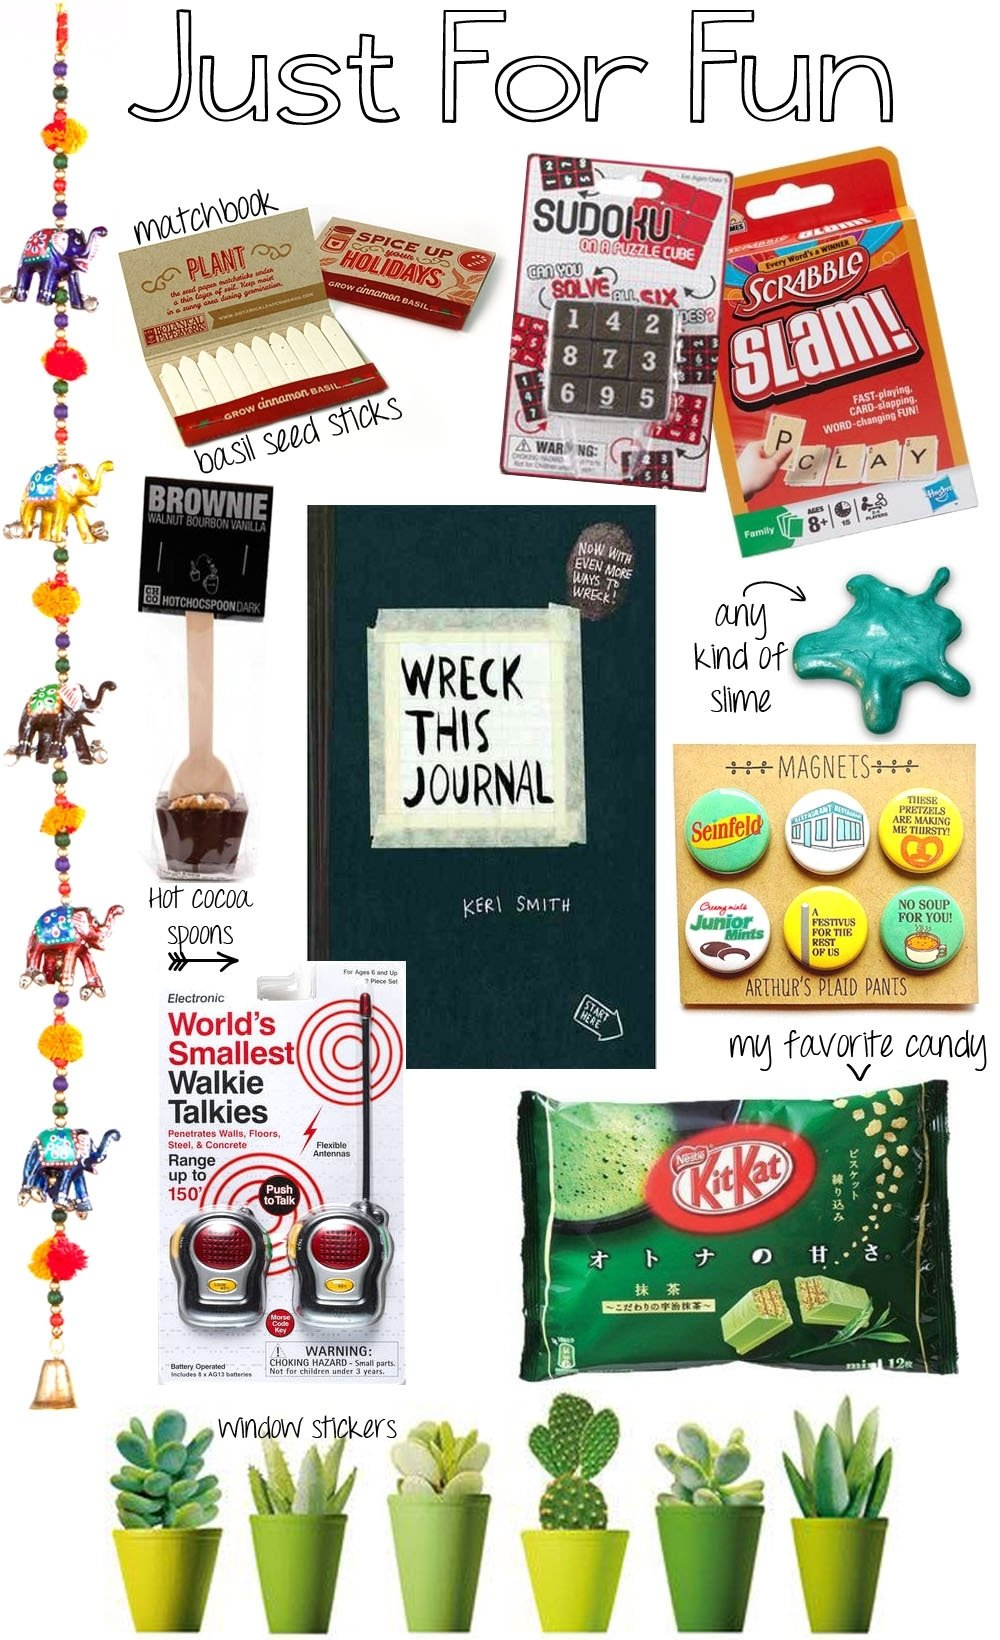 10 Lovable Stocking Stuffer Ideas For Her stocking stuffers for her making mondays 12 2021